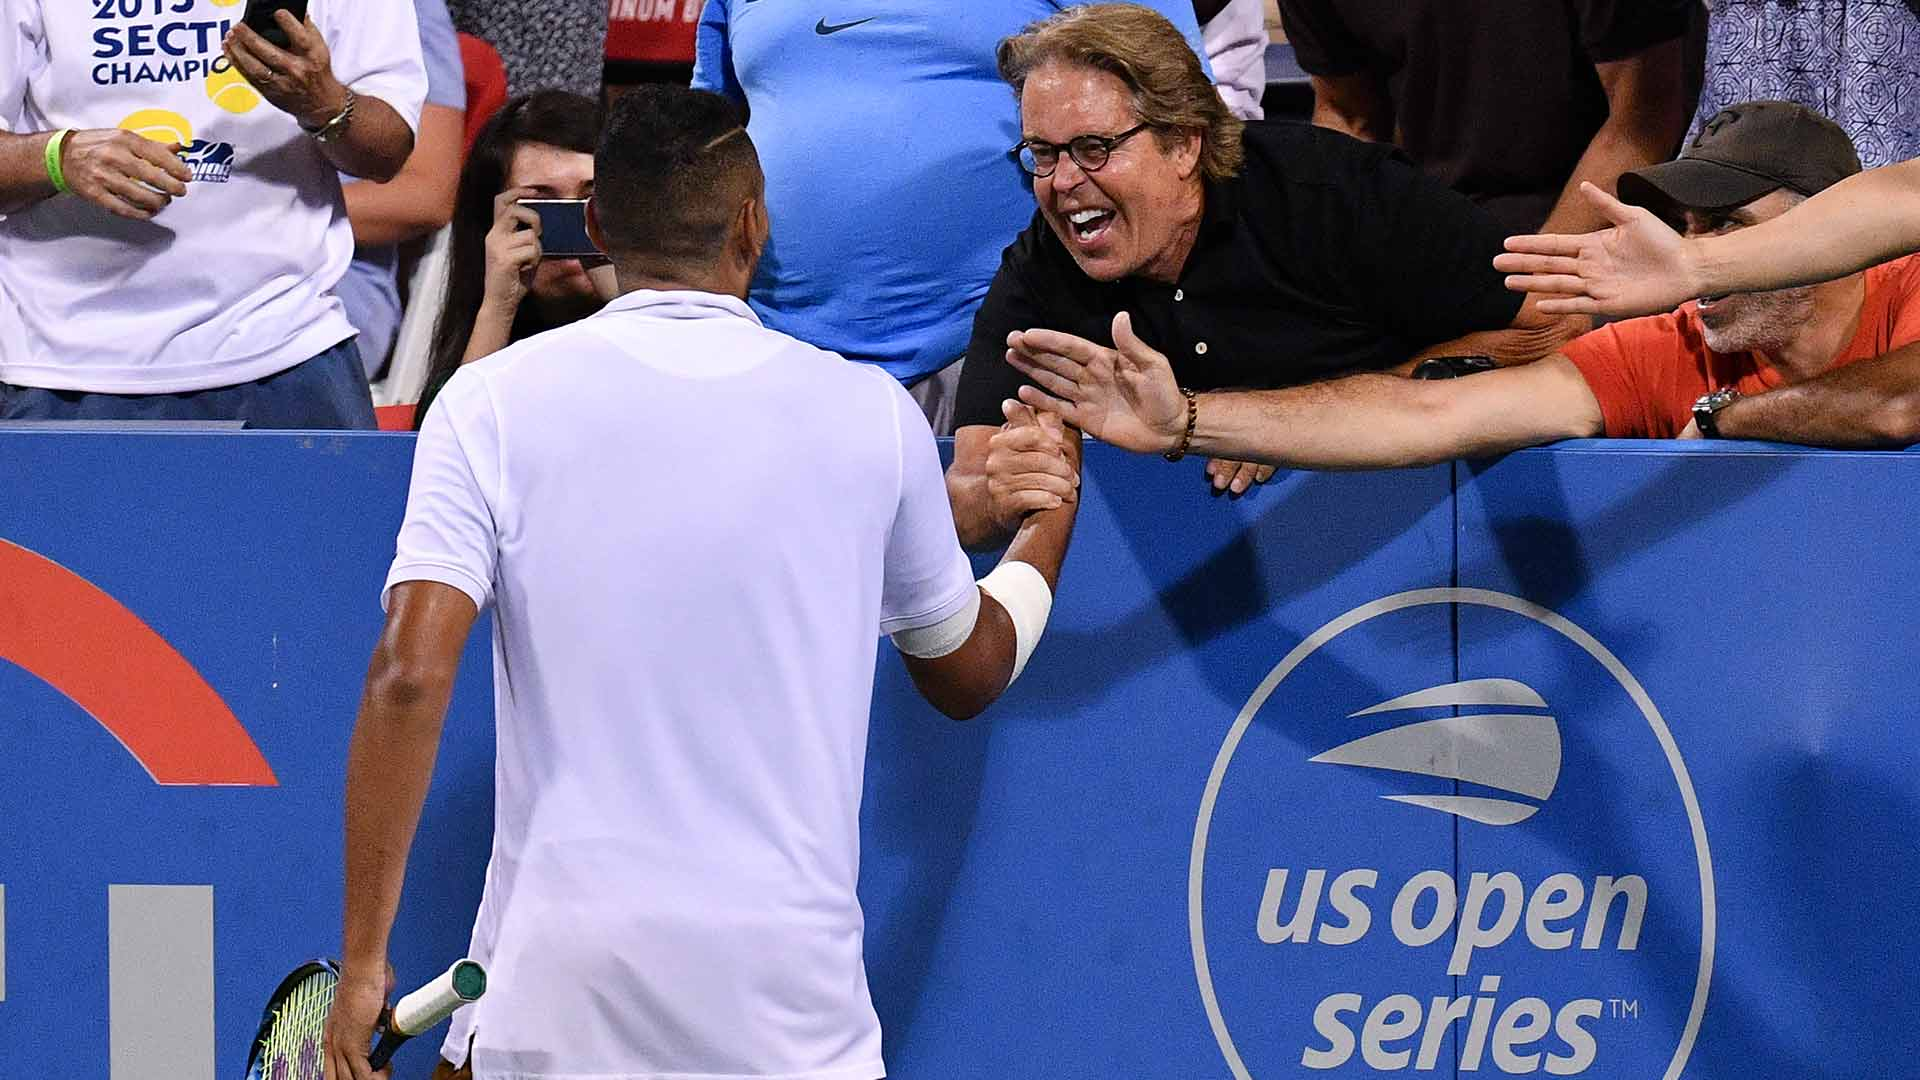 <a href='/en/players/nick-kyrgios/ke17/overview'>Nick Kyrgios</a> celebrates reaching the <a href='/en/tournaments/washington/418/overview'>Citi Open</a> final in Washington, D.C., with his new friend/advisor